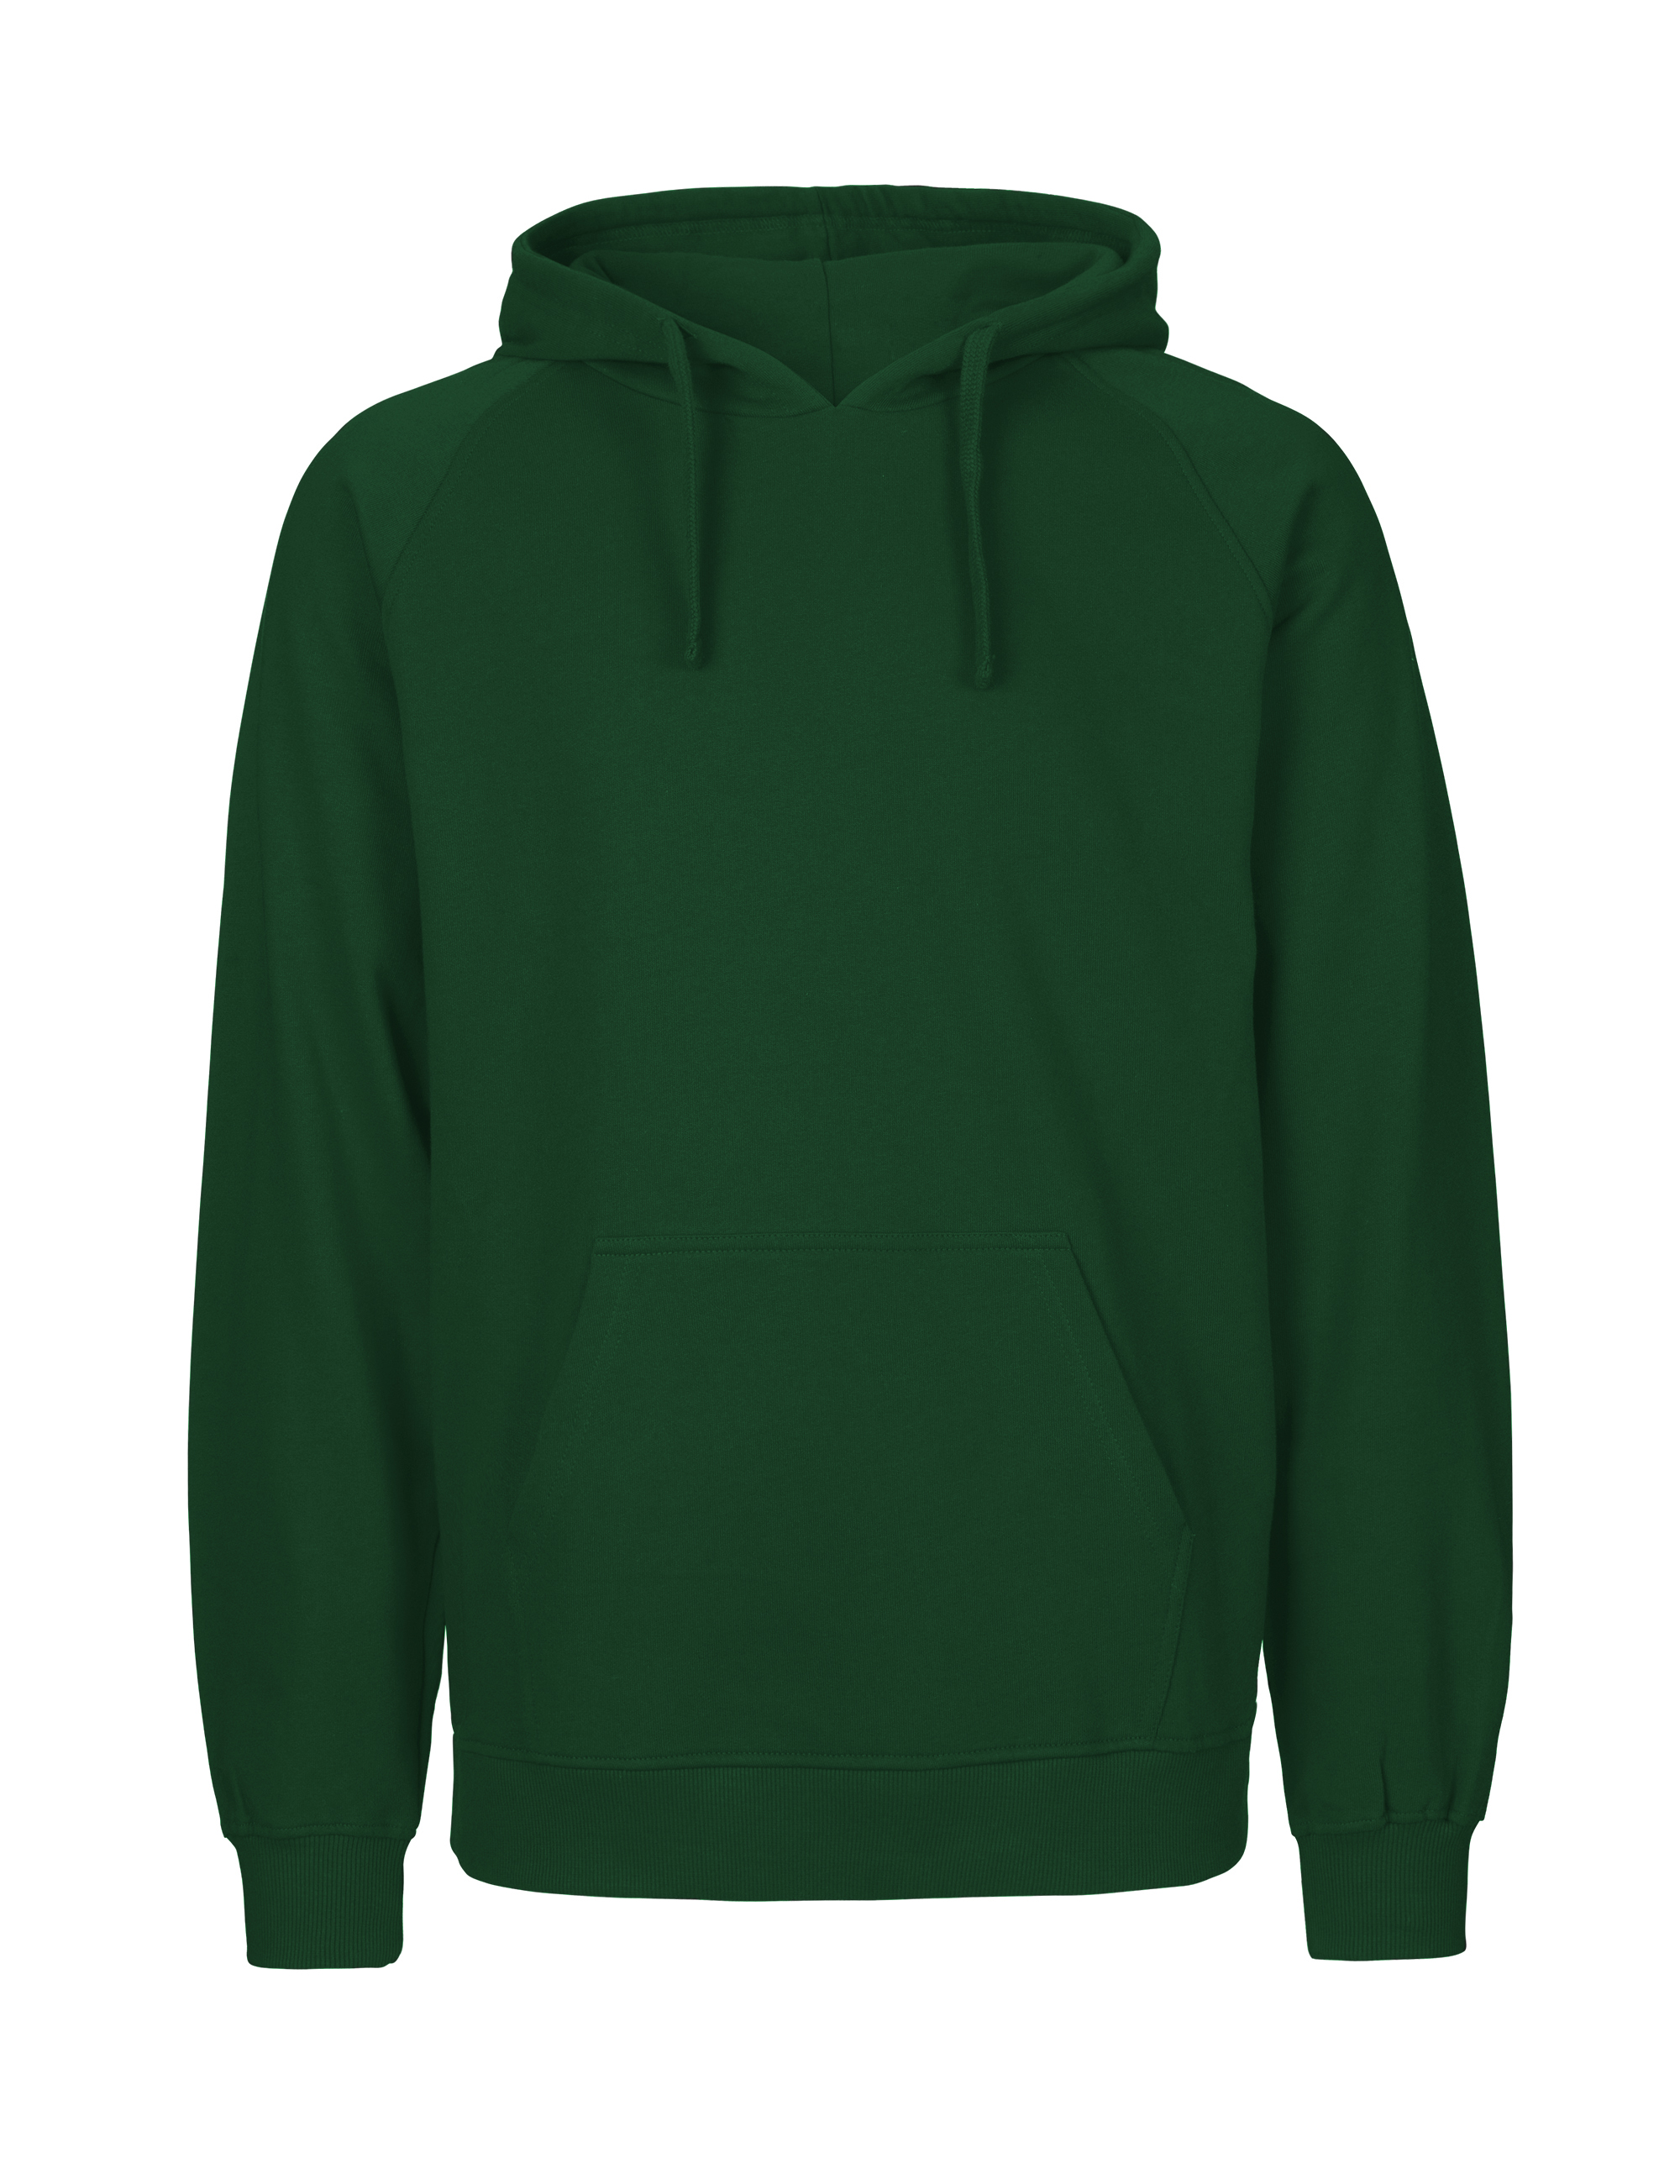 O63101 Mens Hoodie i Bottle Green